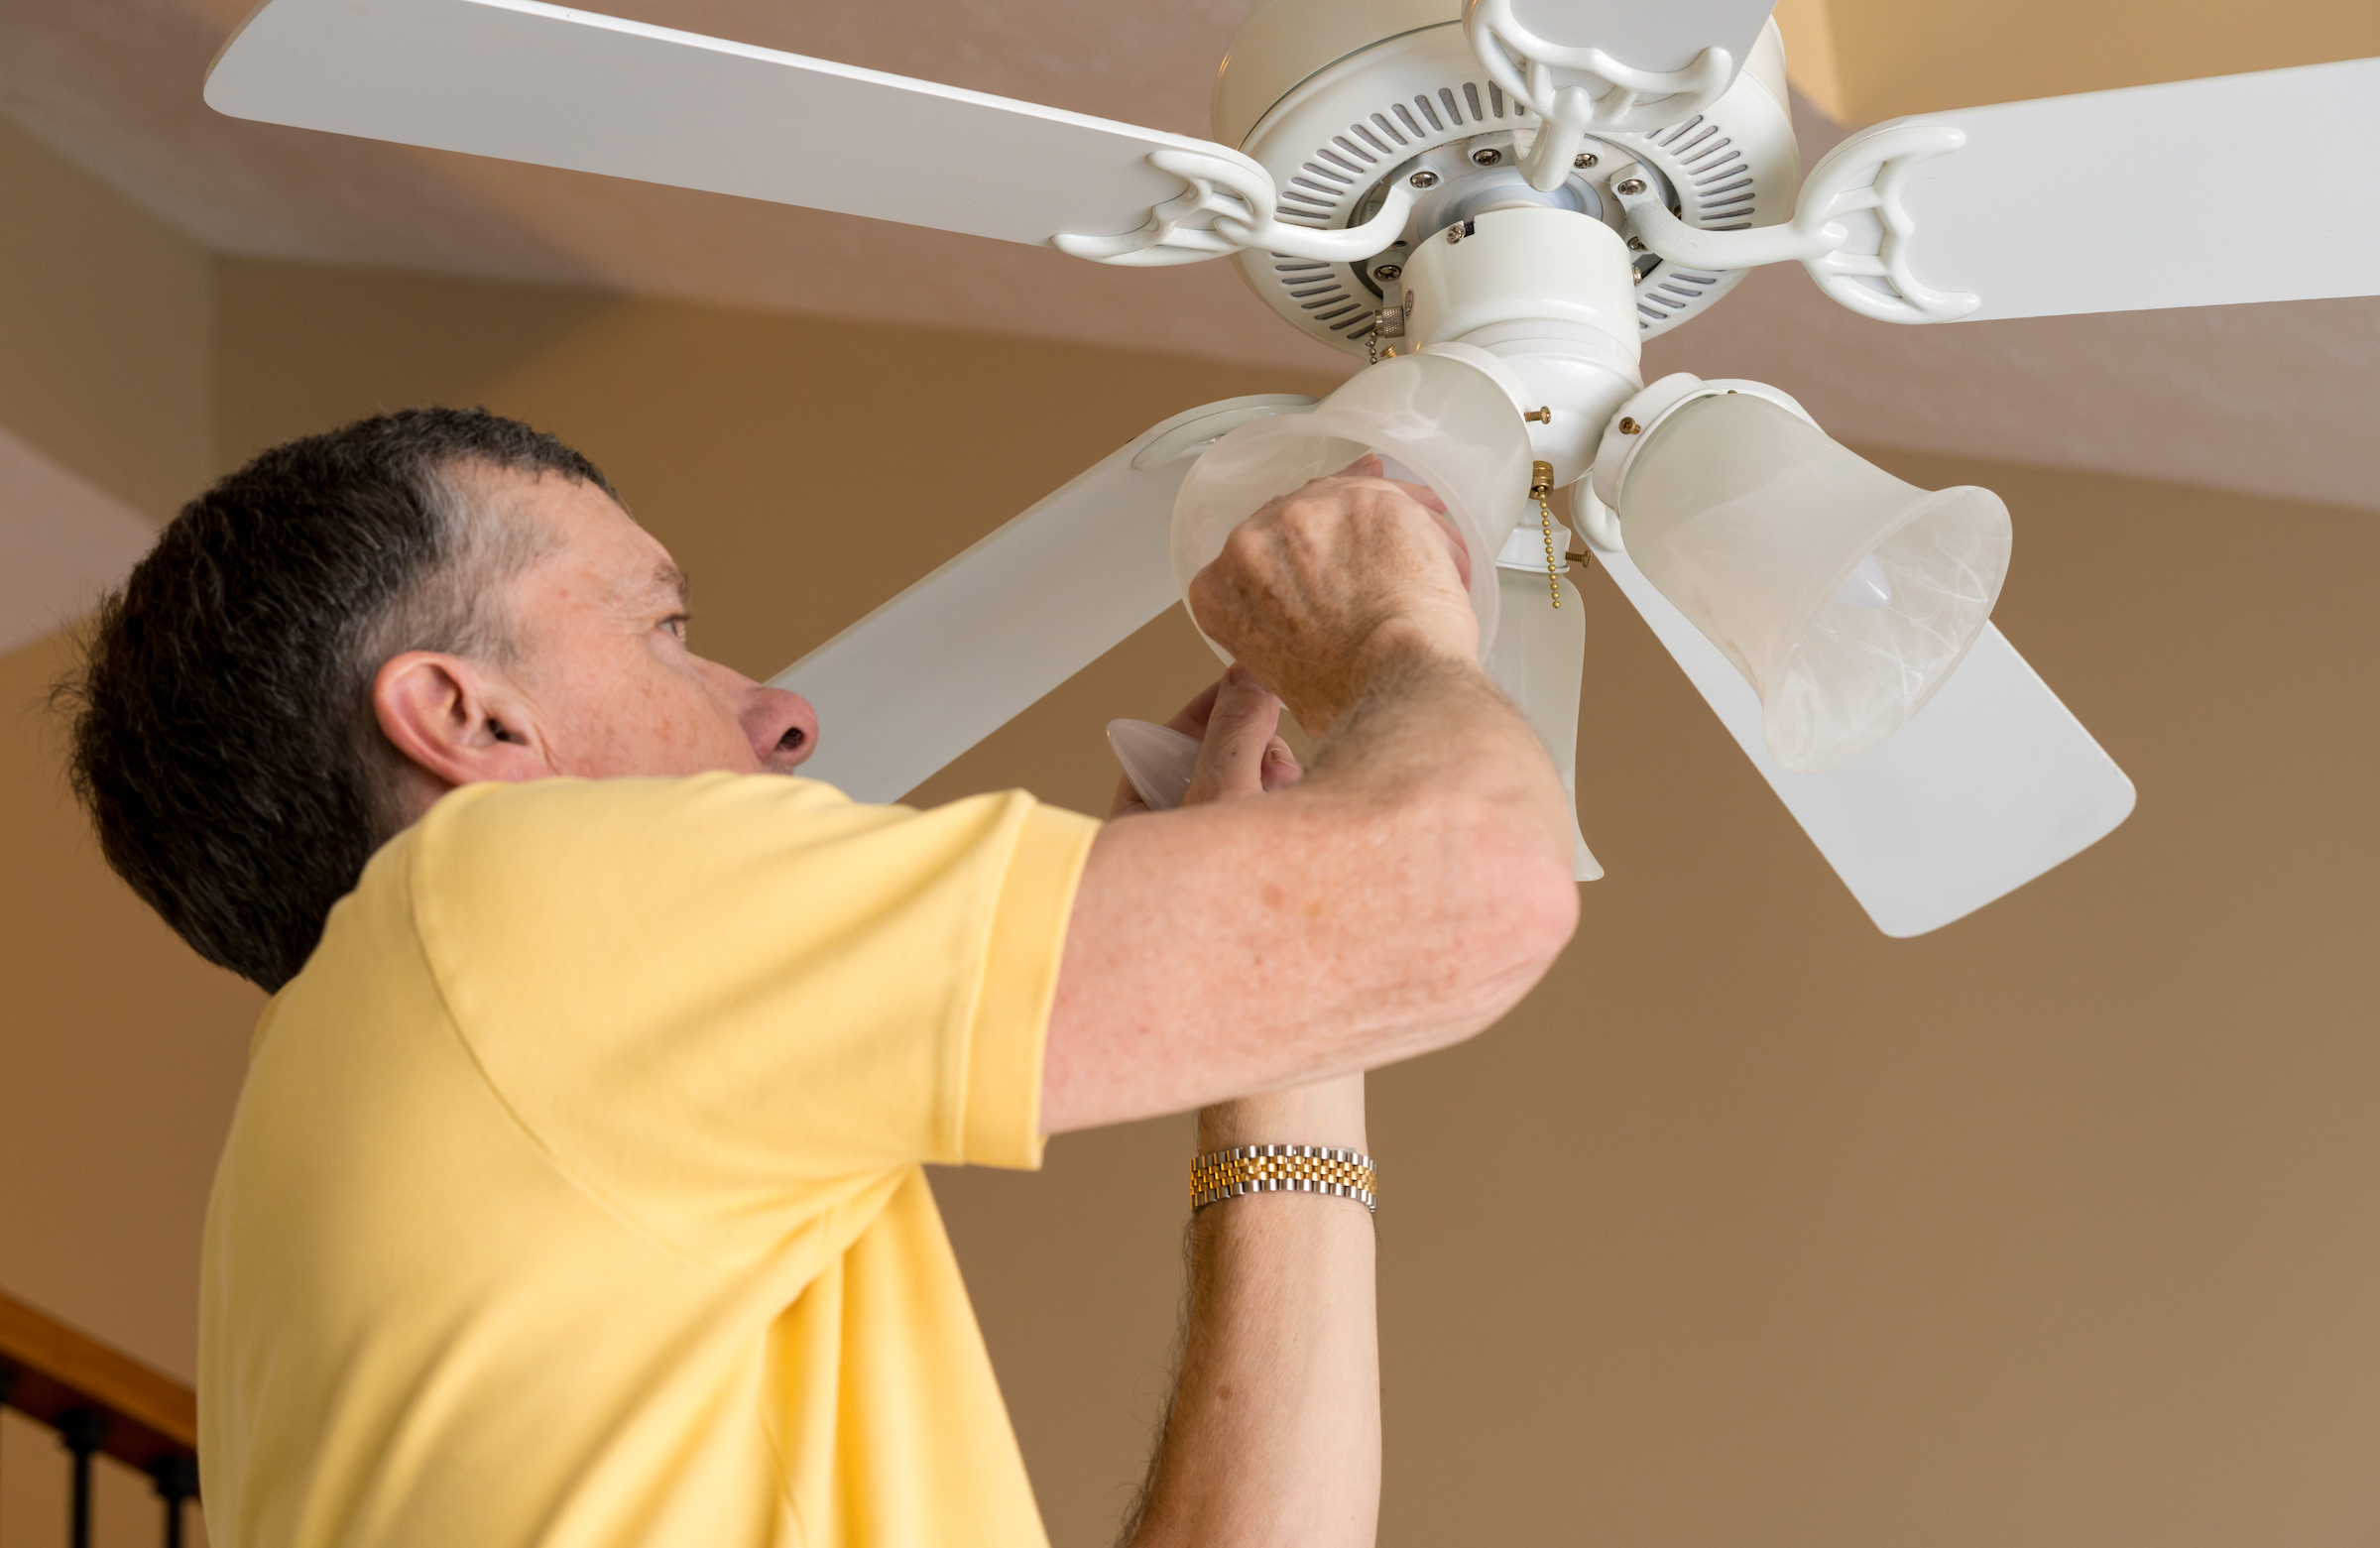 How to install a ceiling fan step by step.